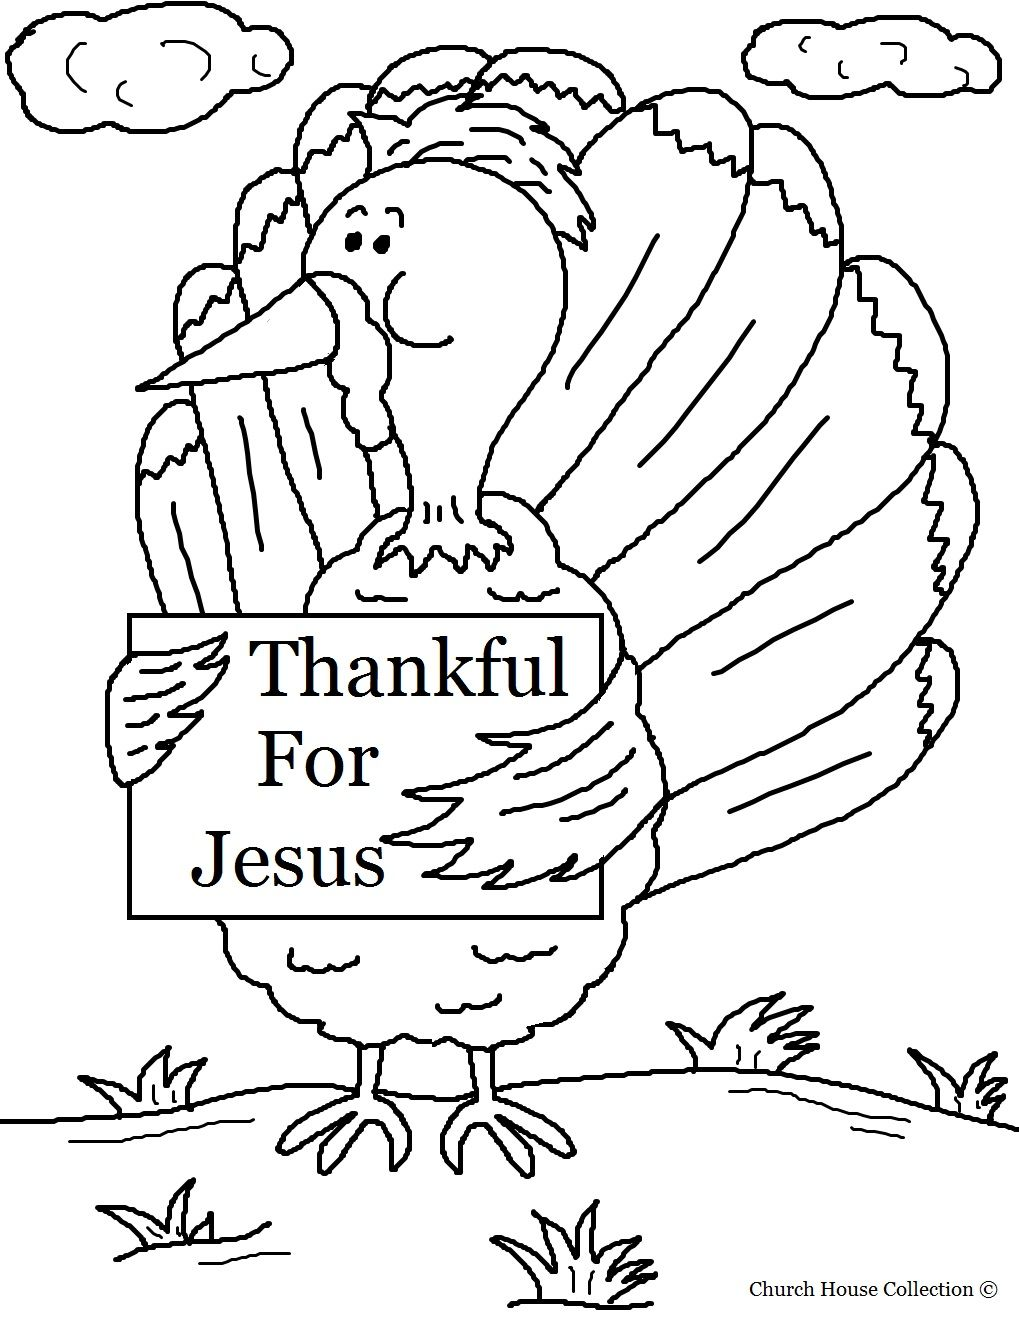 Complex Thanksgiving Coloring Pages Jesus Coloring Pages Free Thanksgiving Coloring Pages Sunday School Coloring Pages